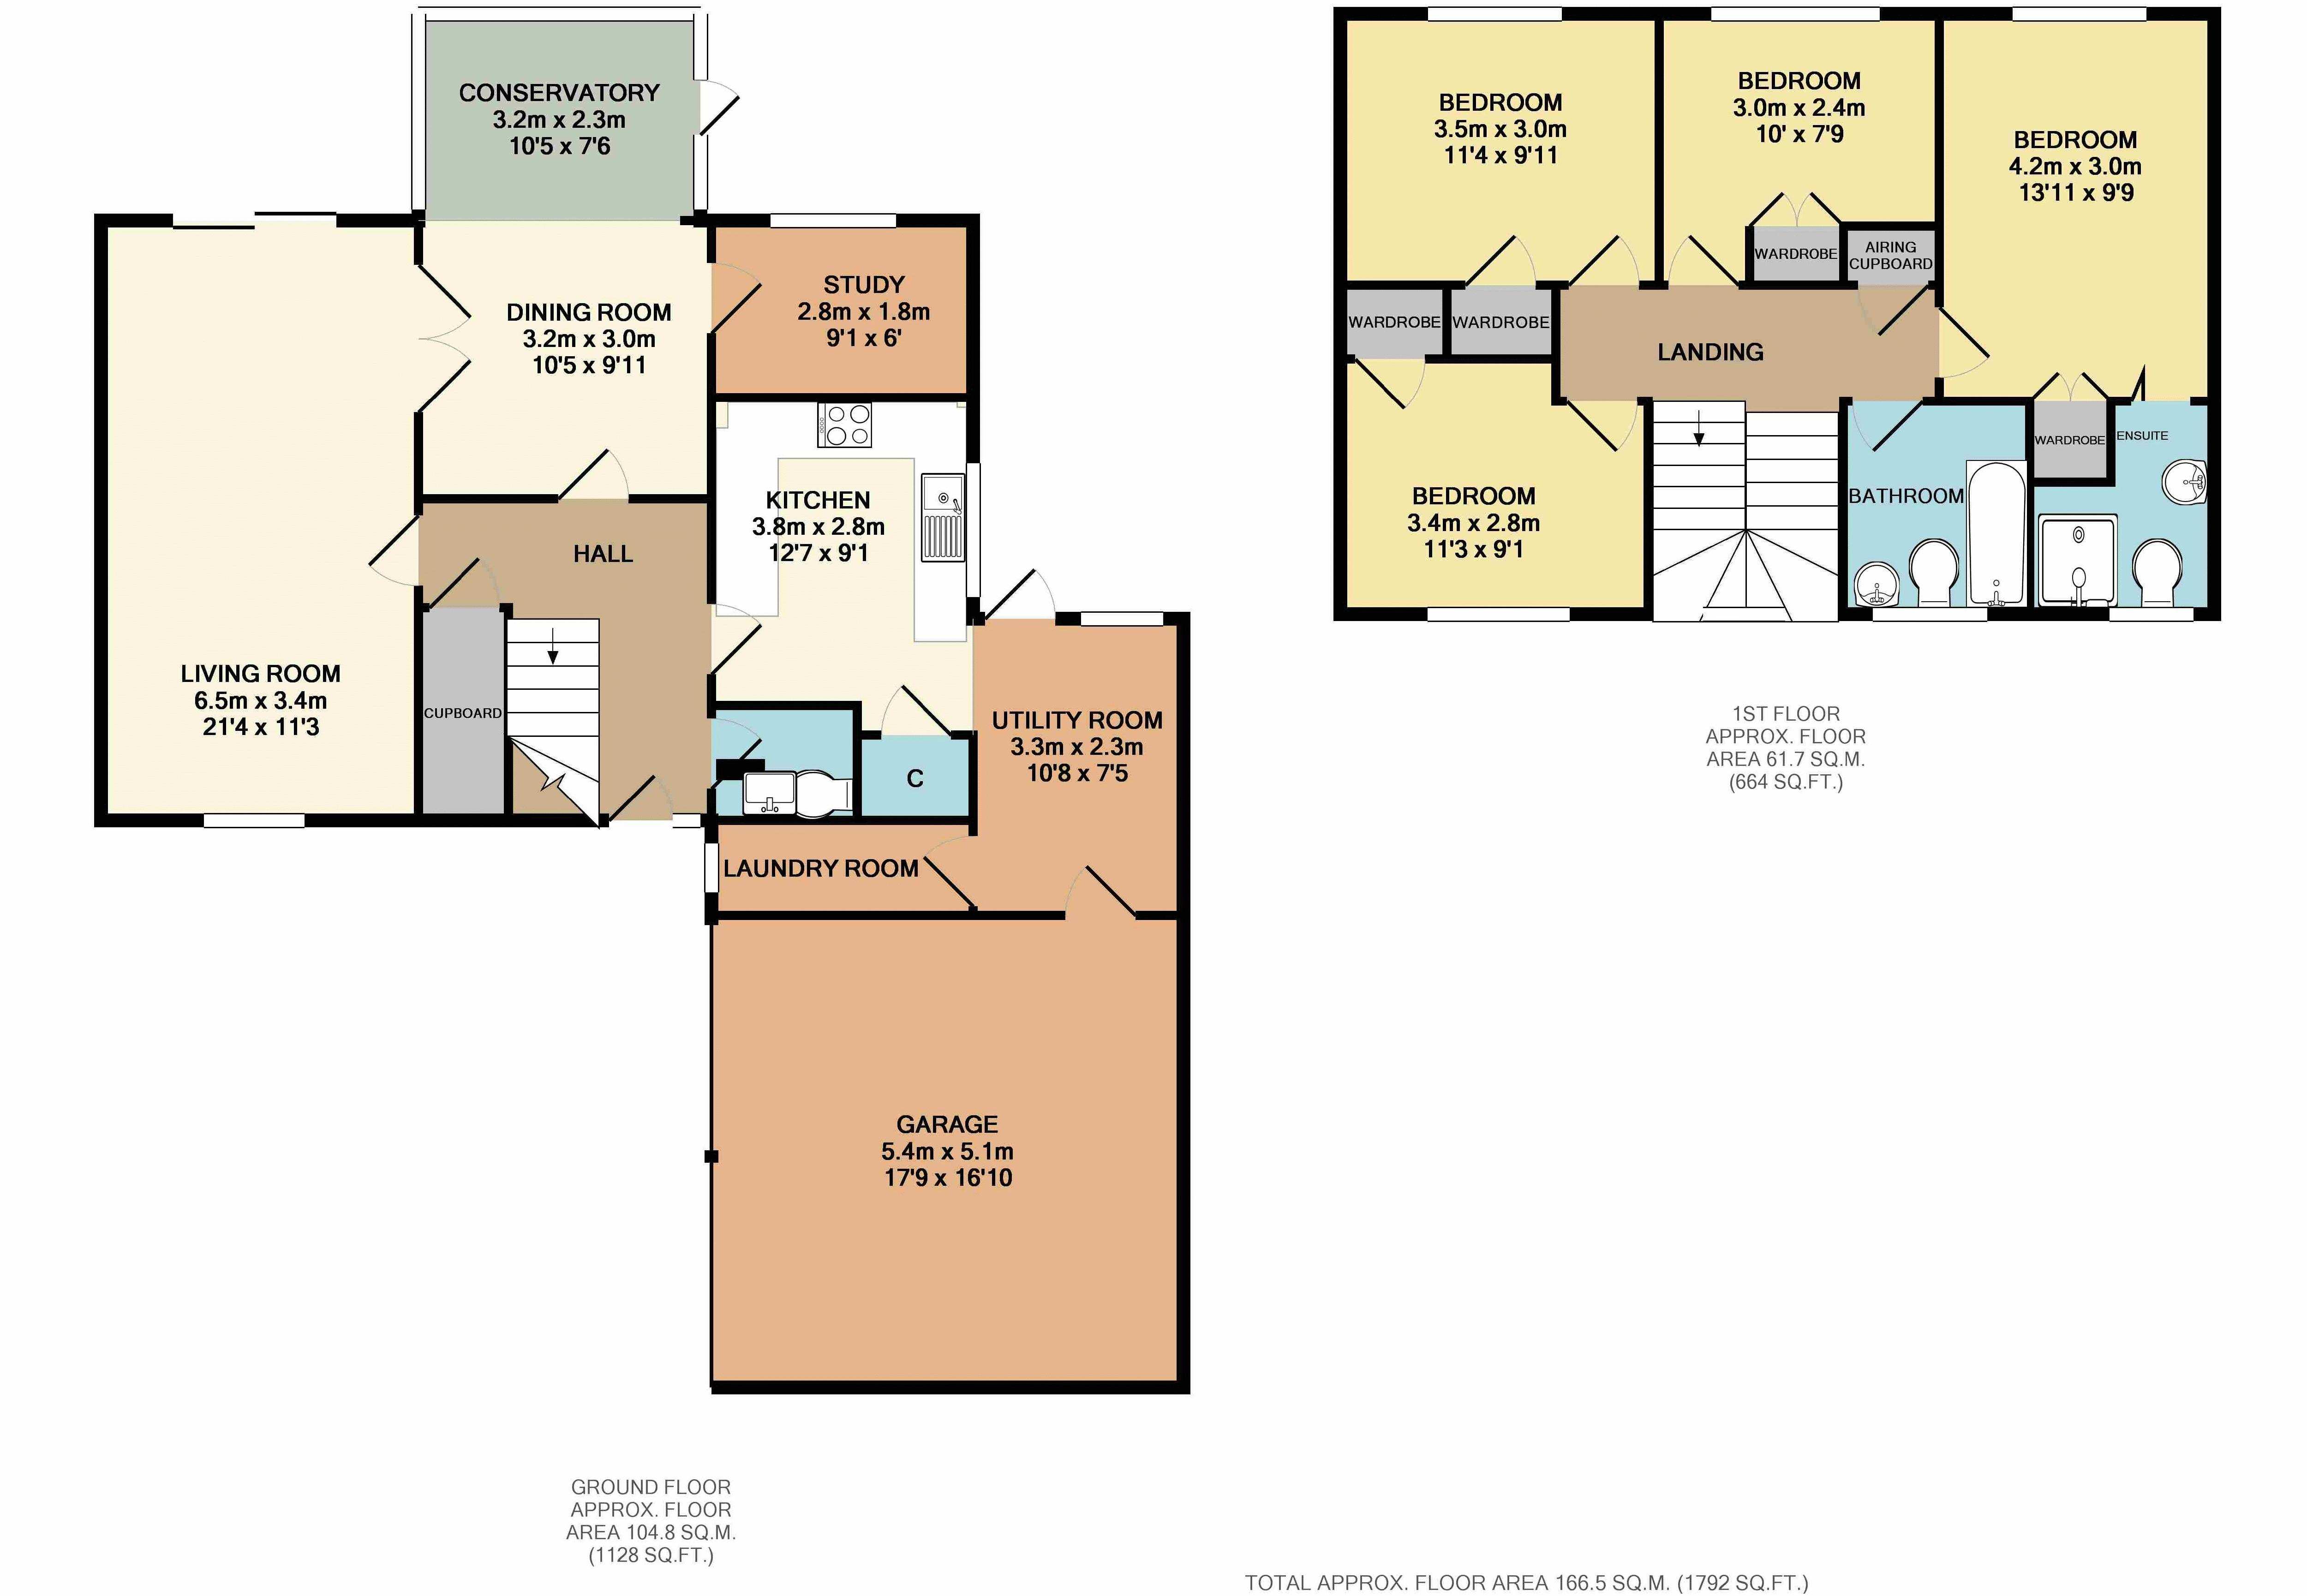 4 bedroom house for sale in leighton buzzard for How much is a bathroom worth on an appraisal